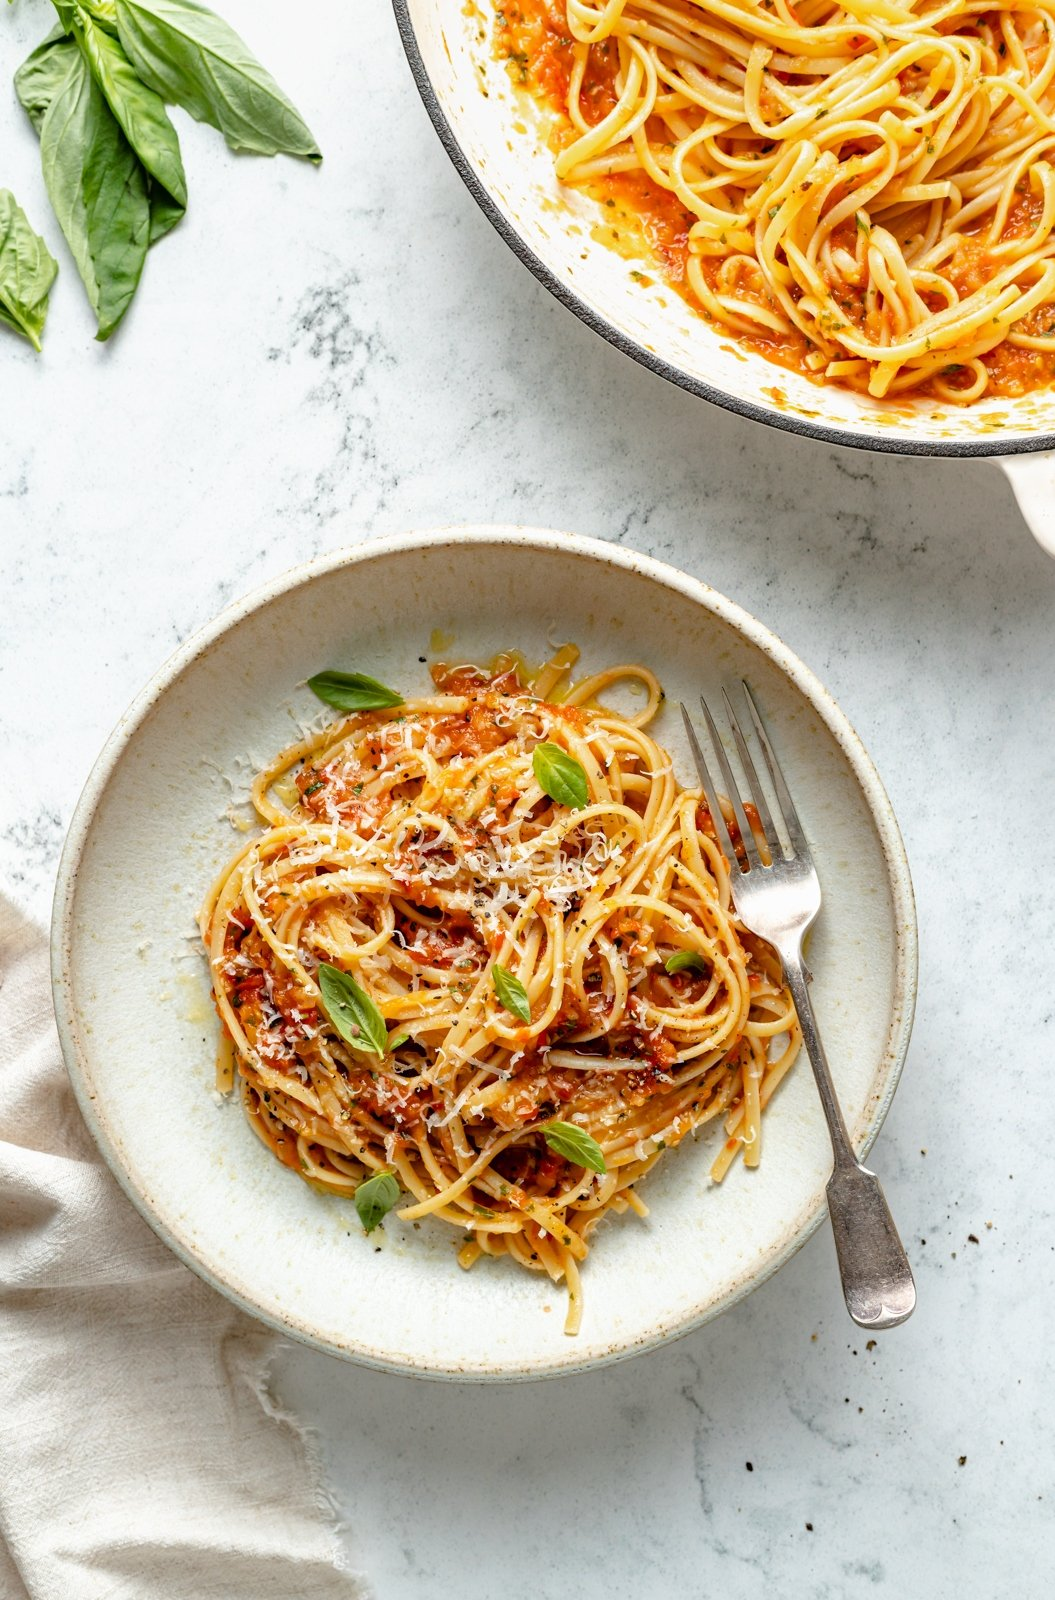 spaghetti with tomato sauce on a plate with a fork